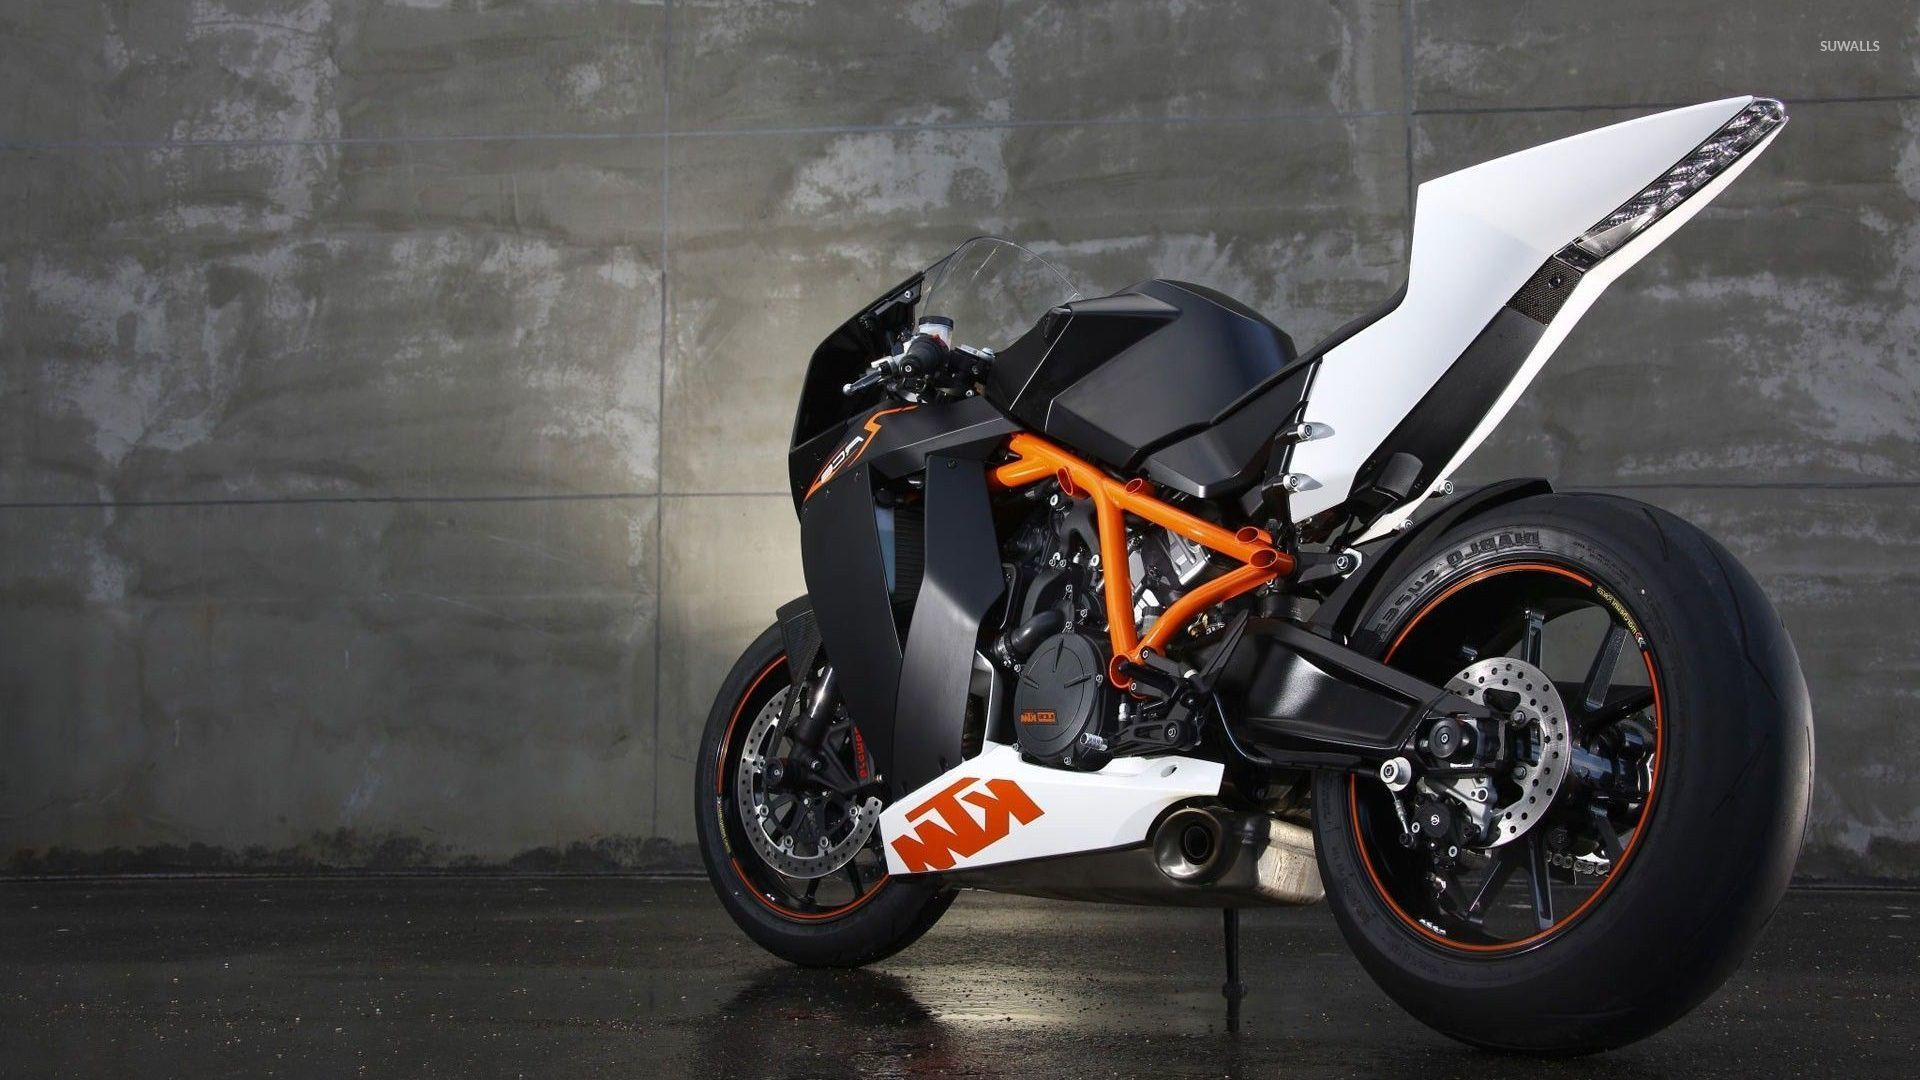 KTM 1190 RC8 wallpaper   Motorcycle wallpapers   8974 1920x1080